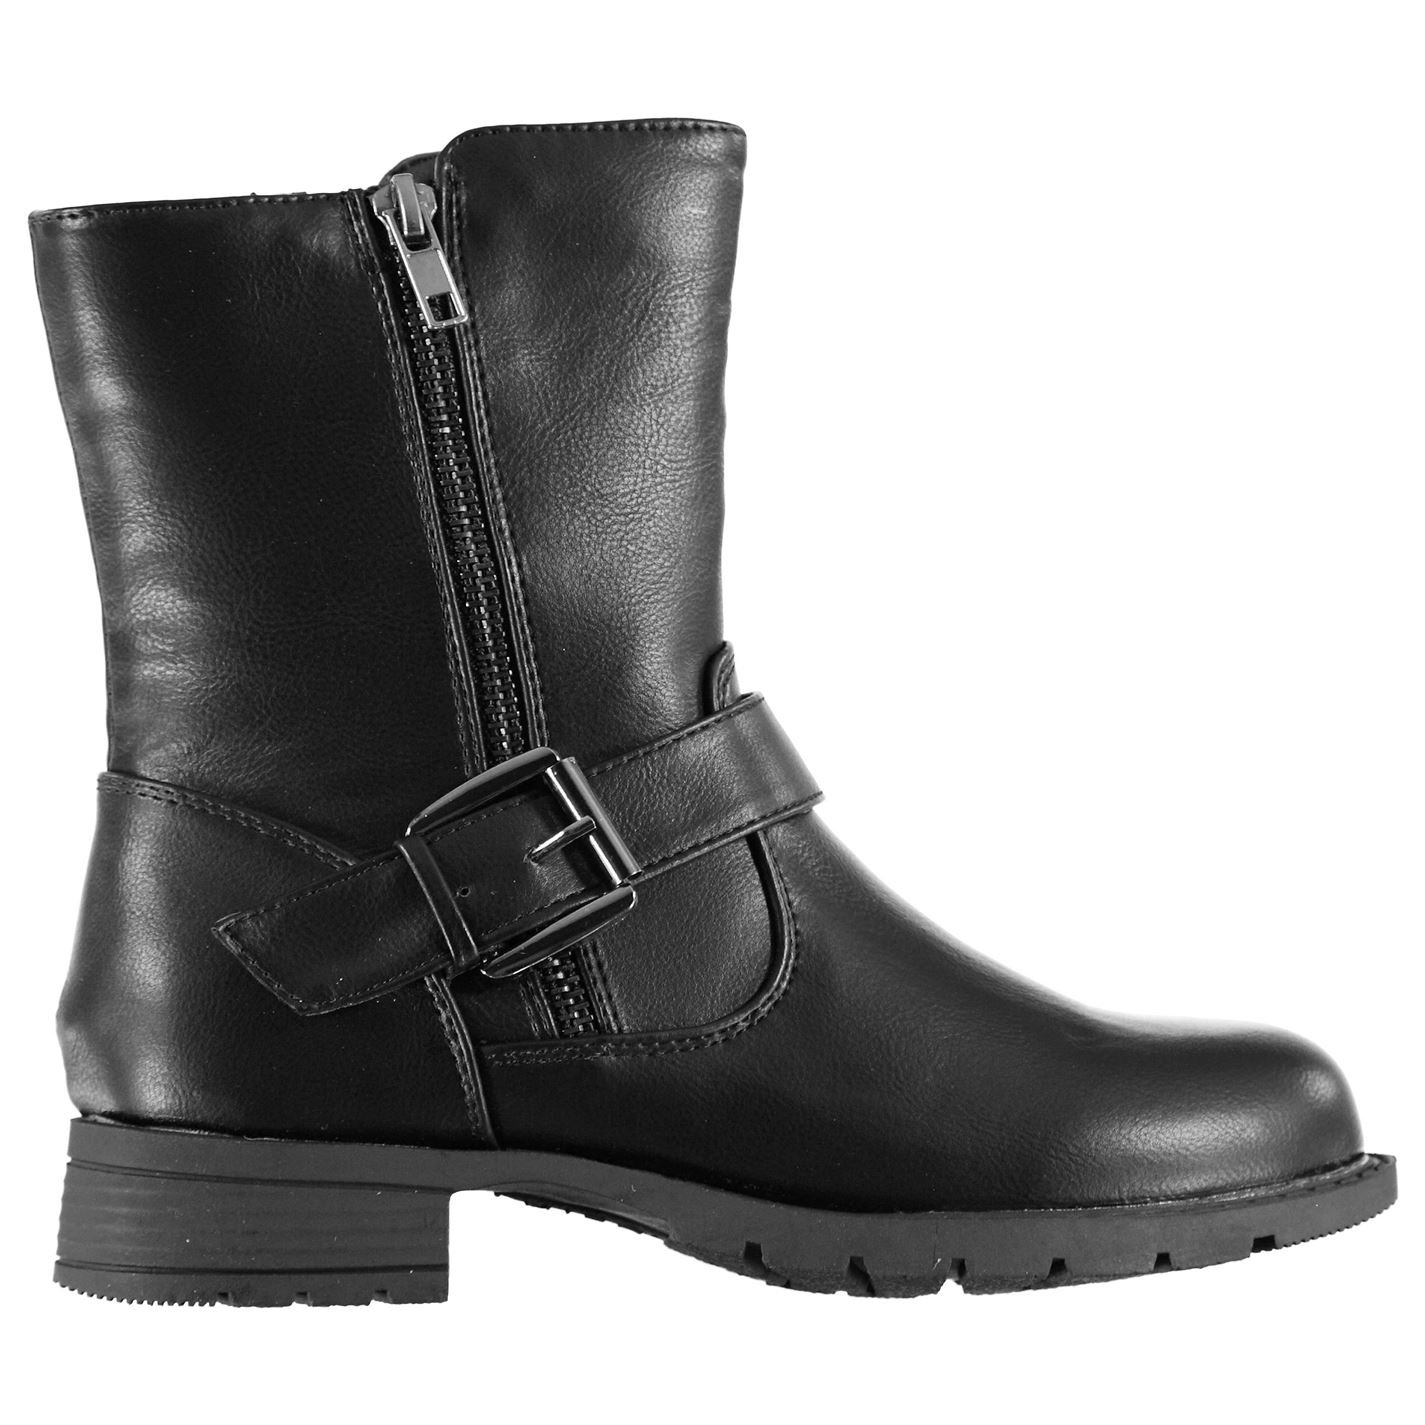 Miso Bella Biker Child Girls Boots Black